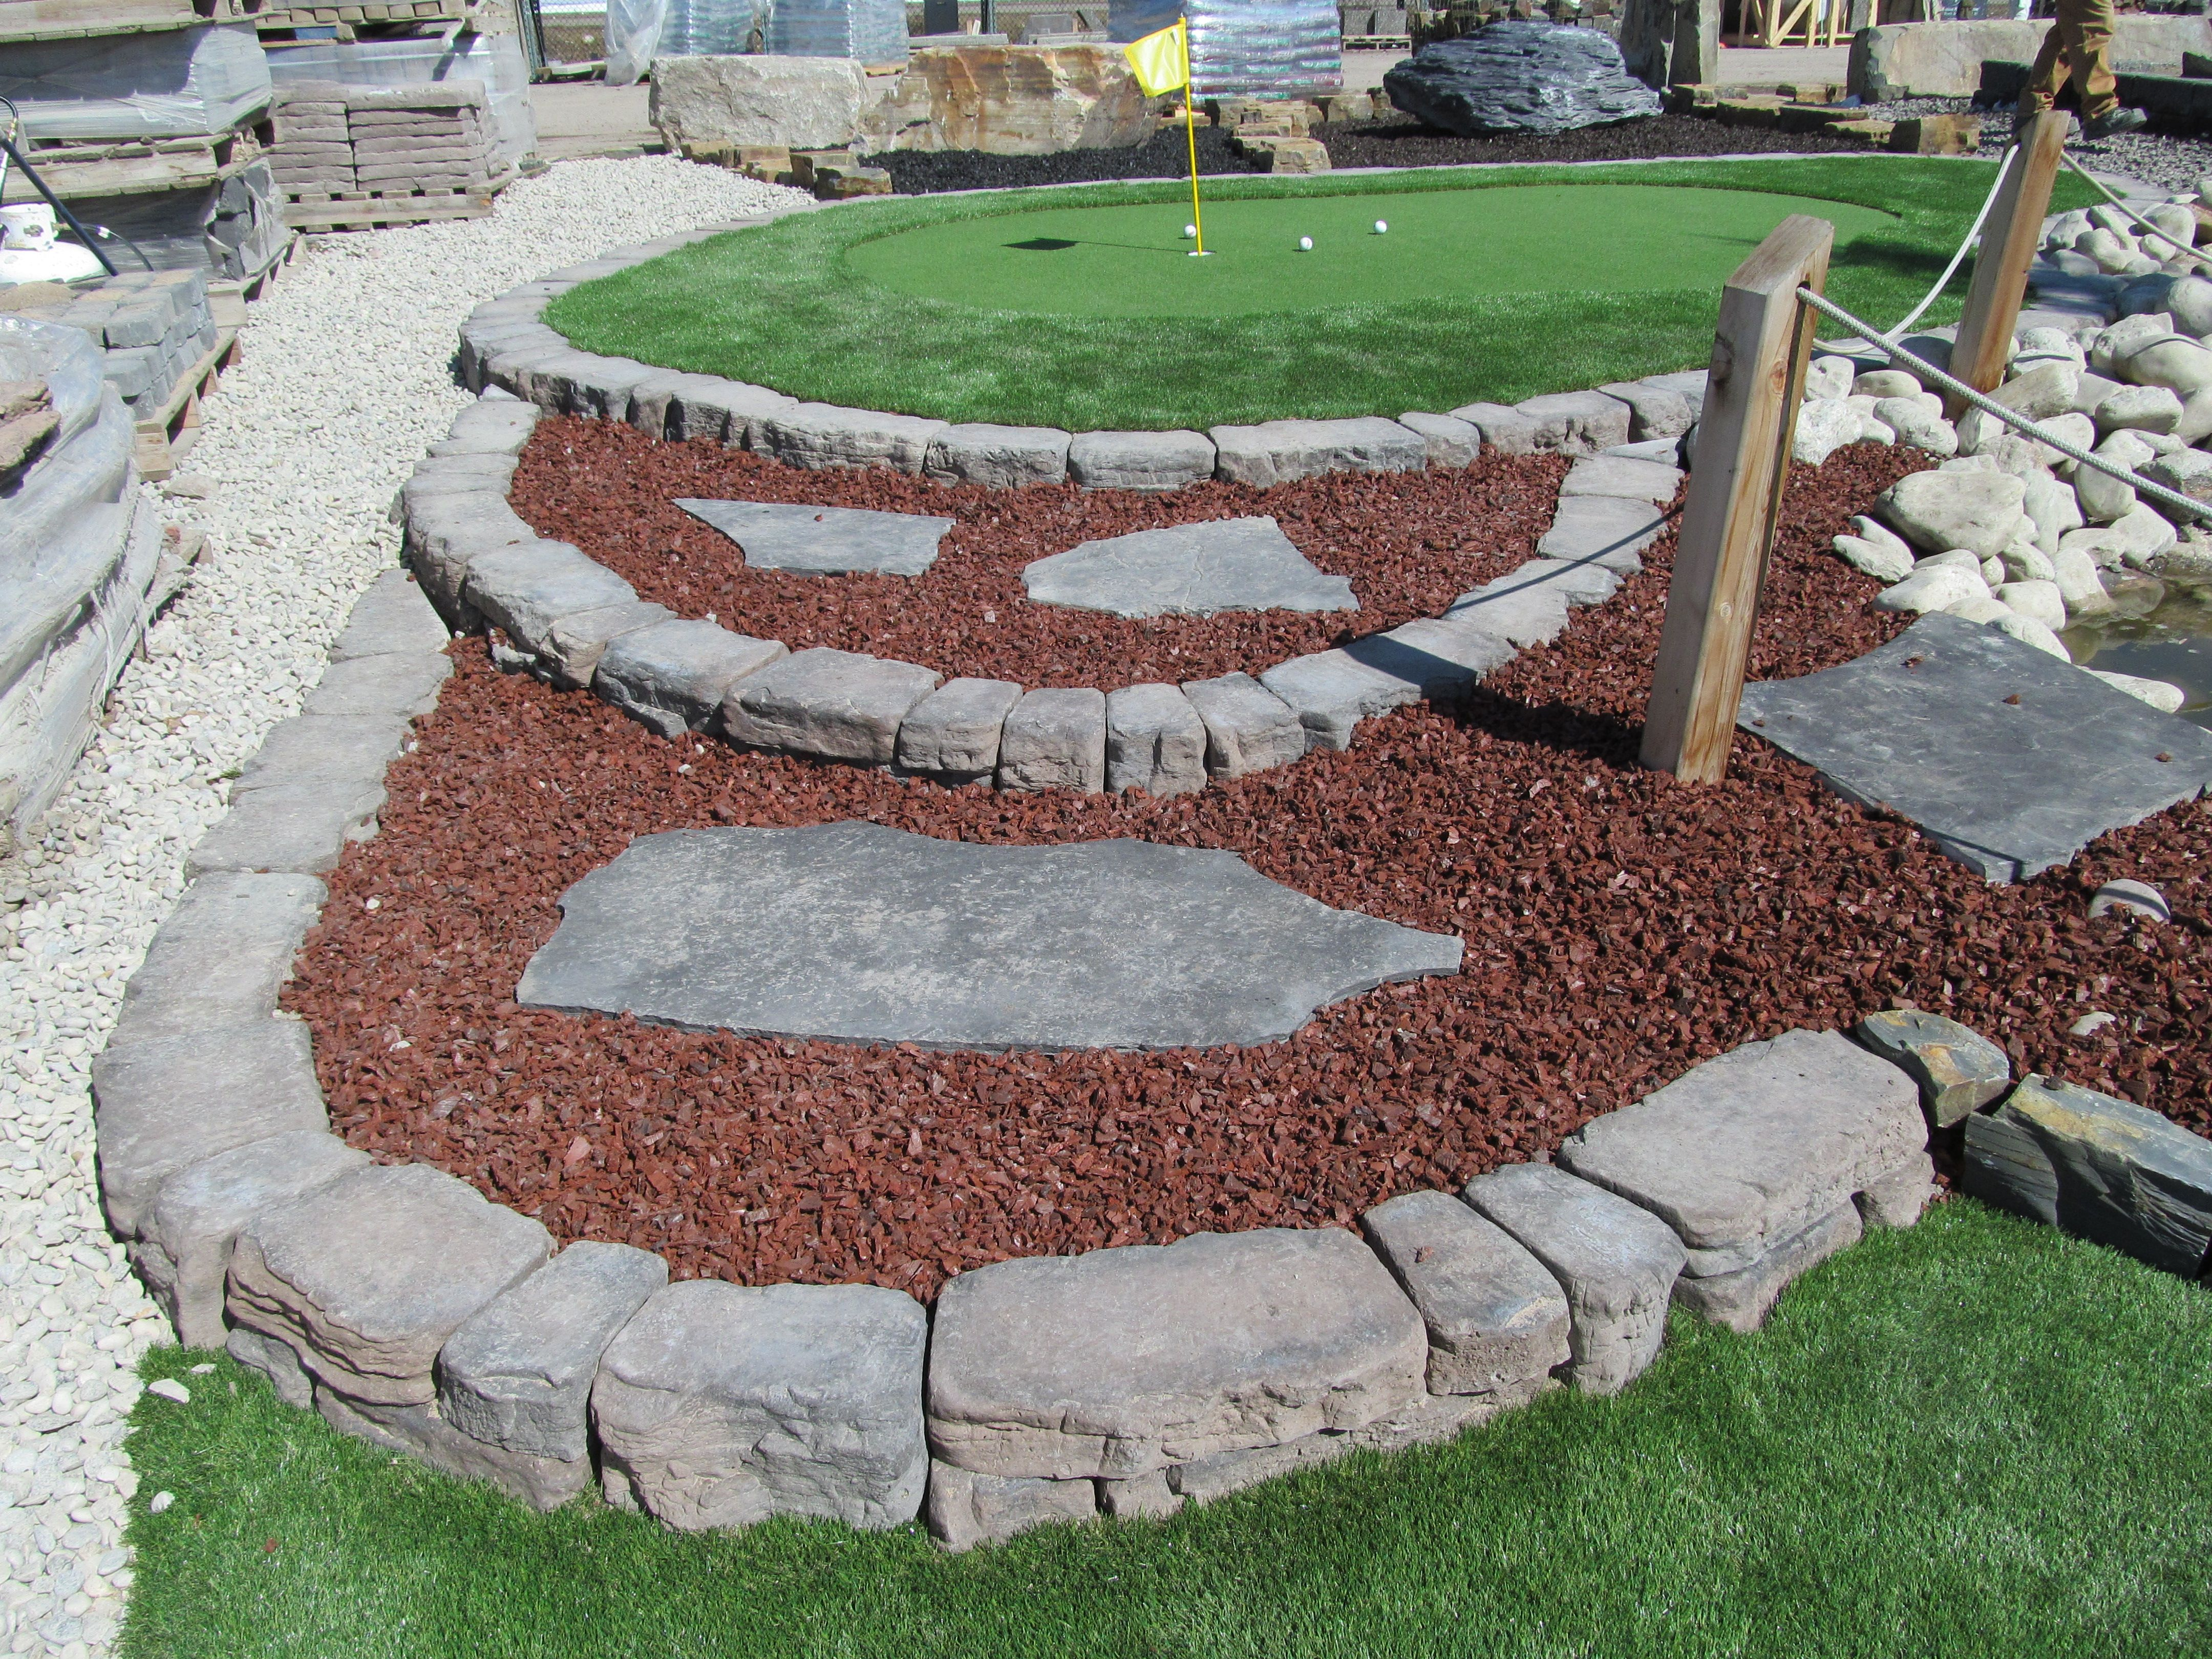 Artificial grass is low-maintenance and looks great all year long